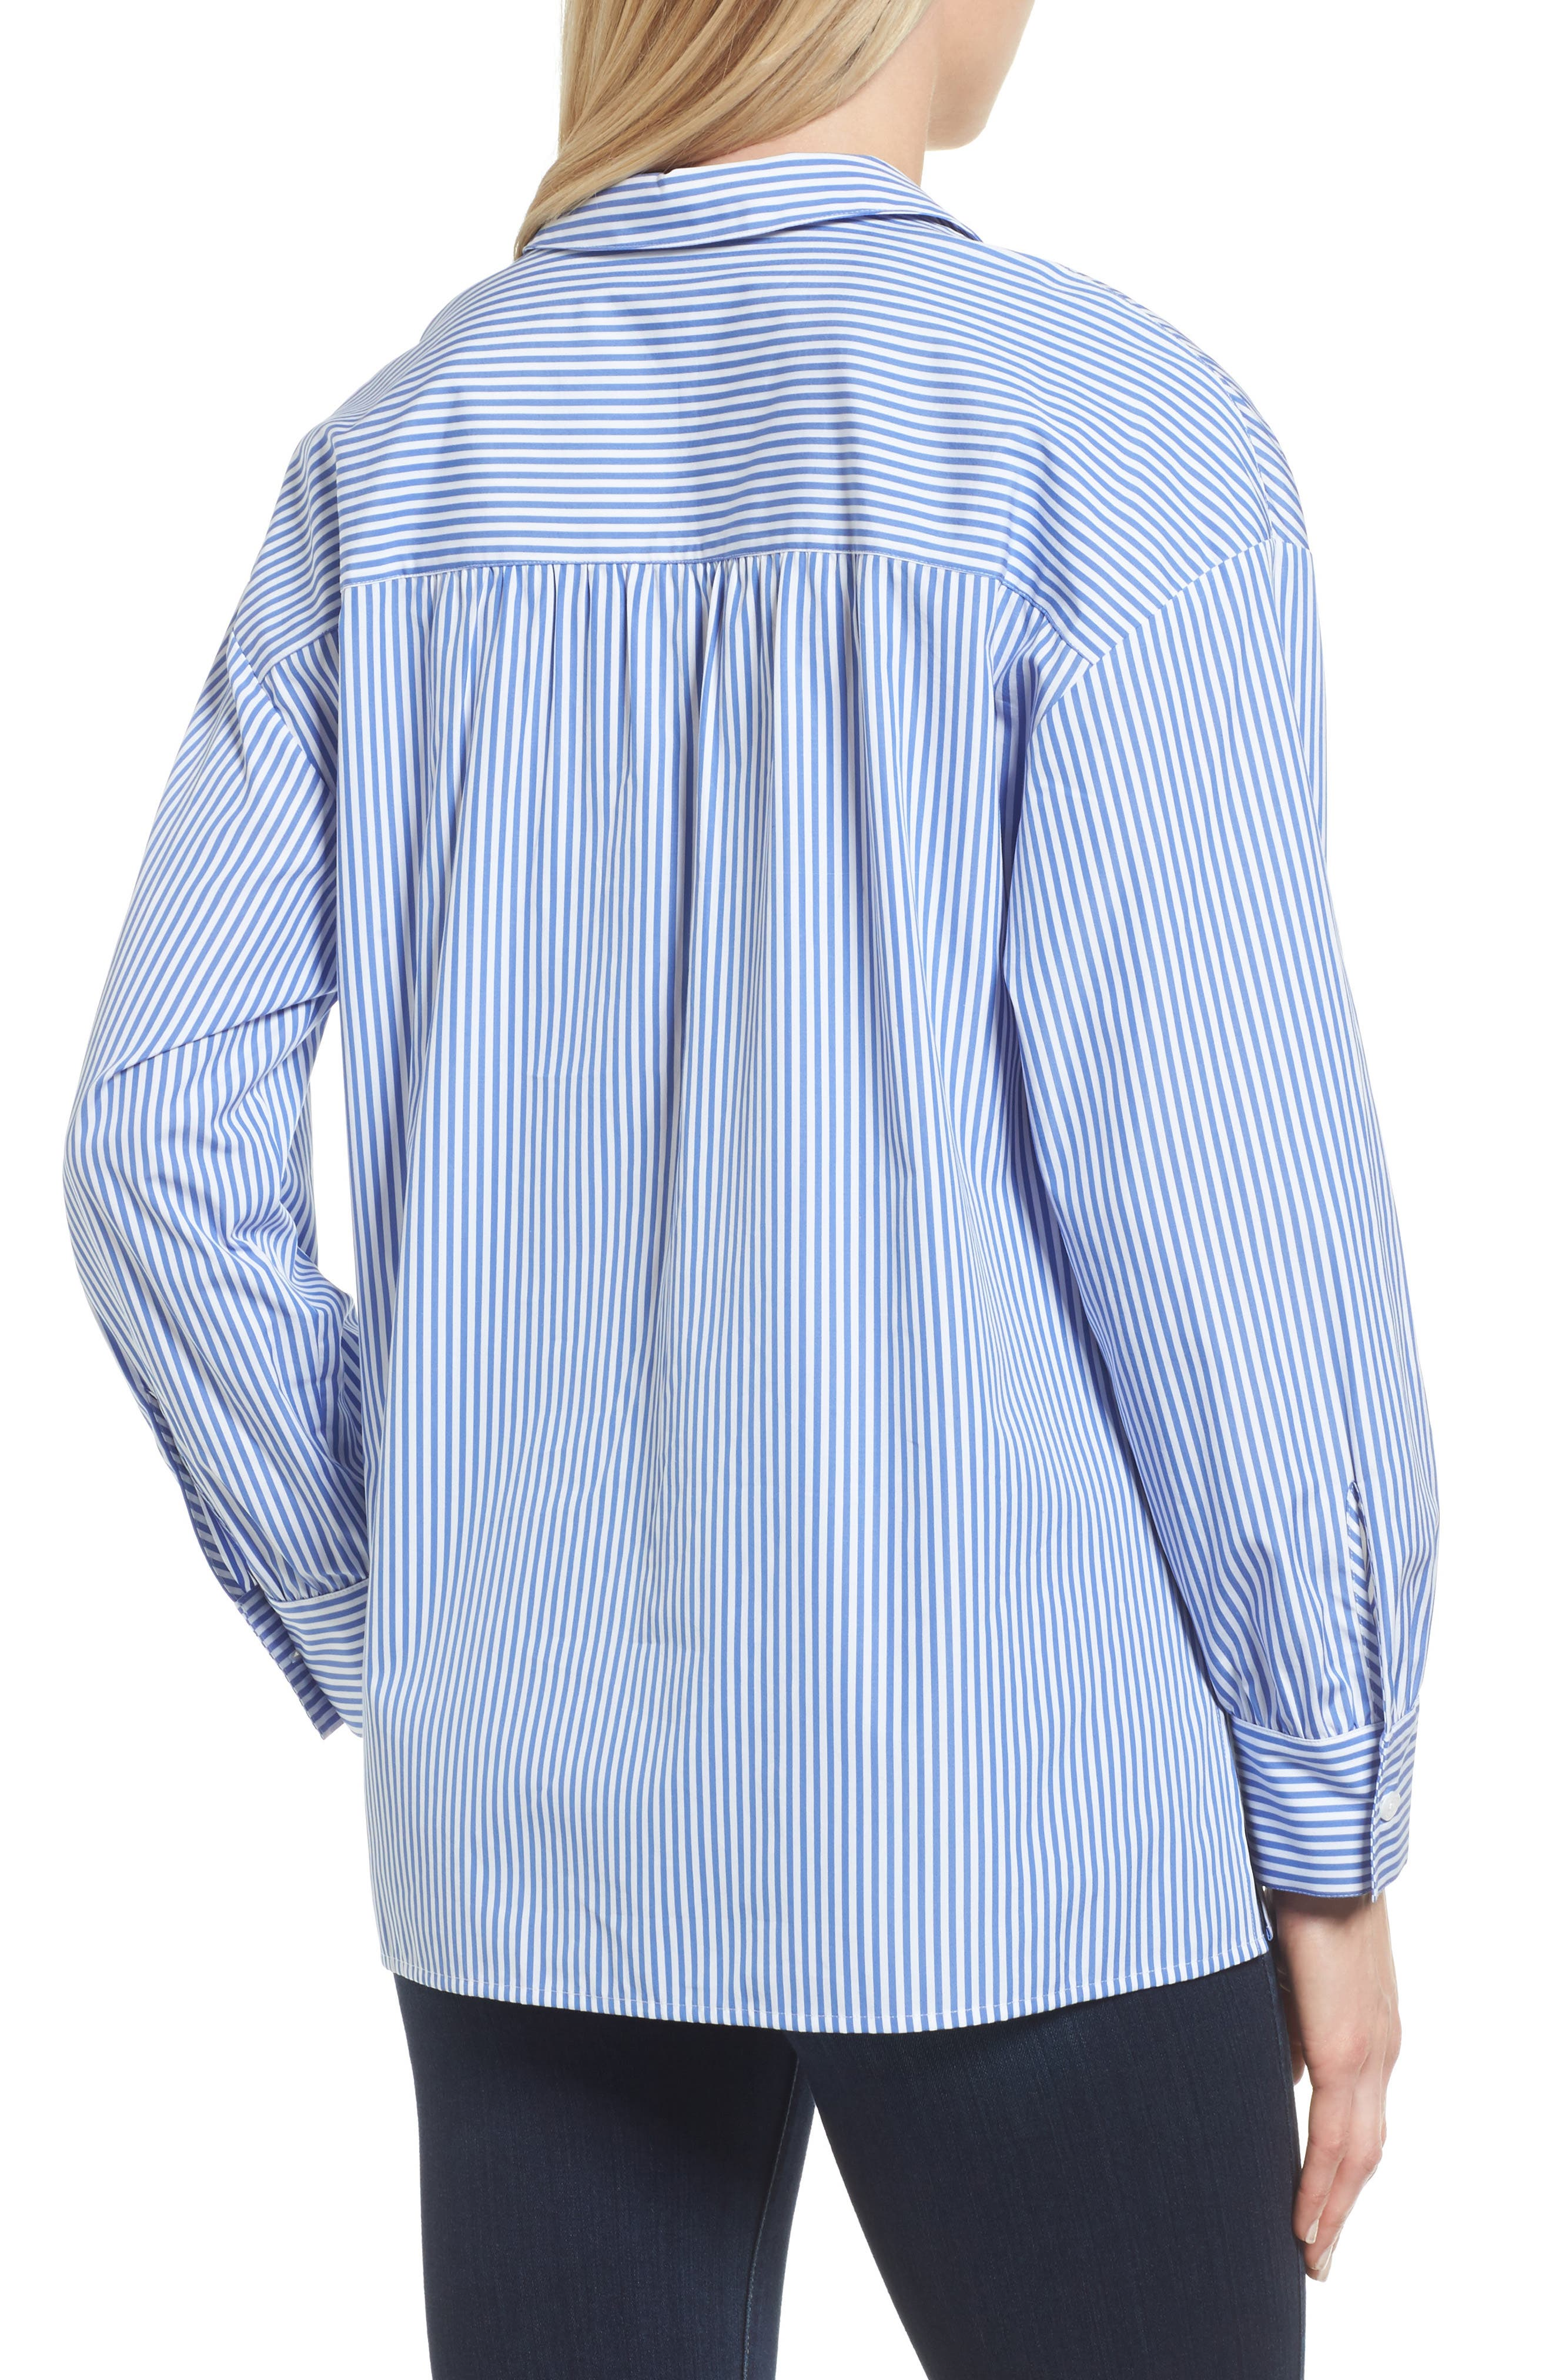 Lace-Up Stripe Shirt,                             Alternate thumbnail 3, color,                             Blue/ White Stripe